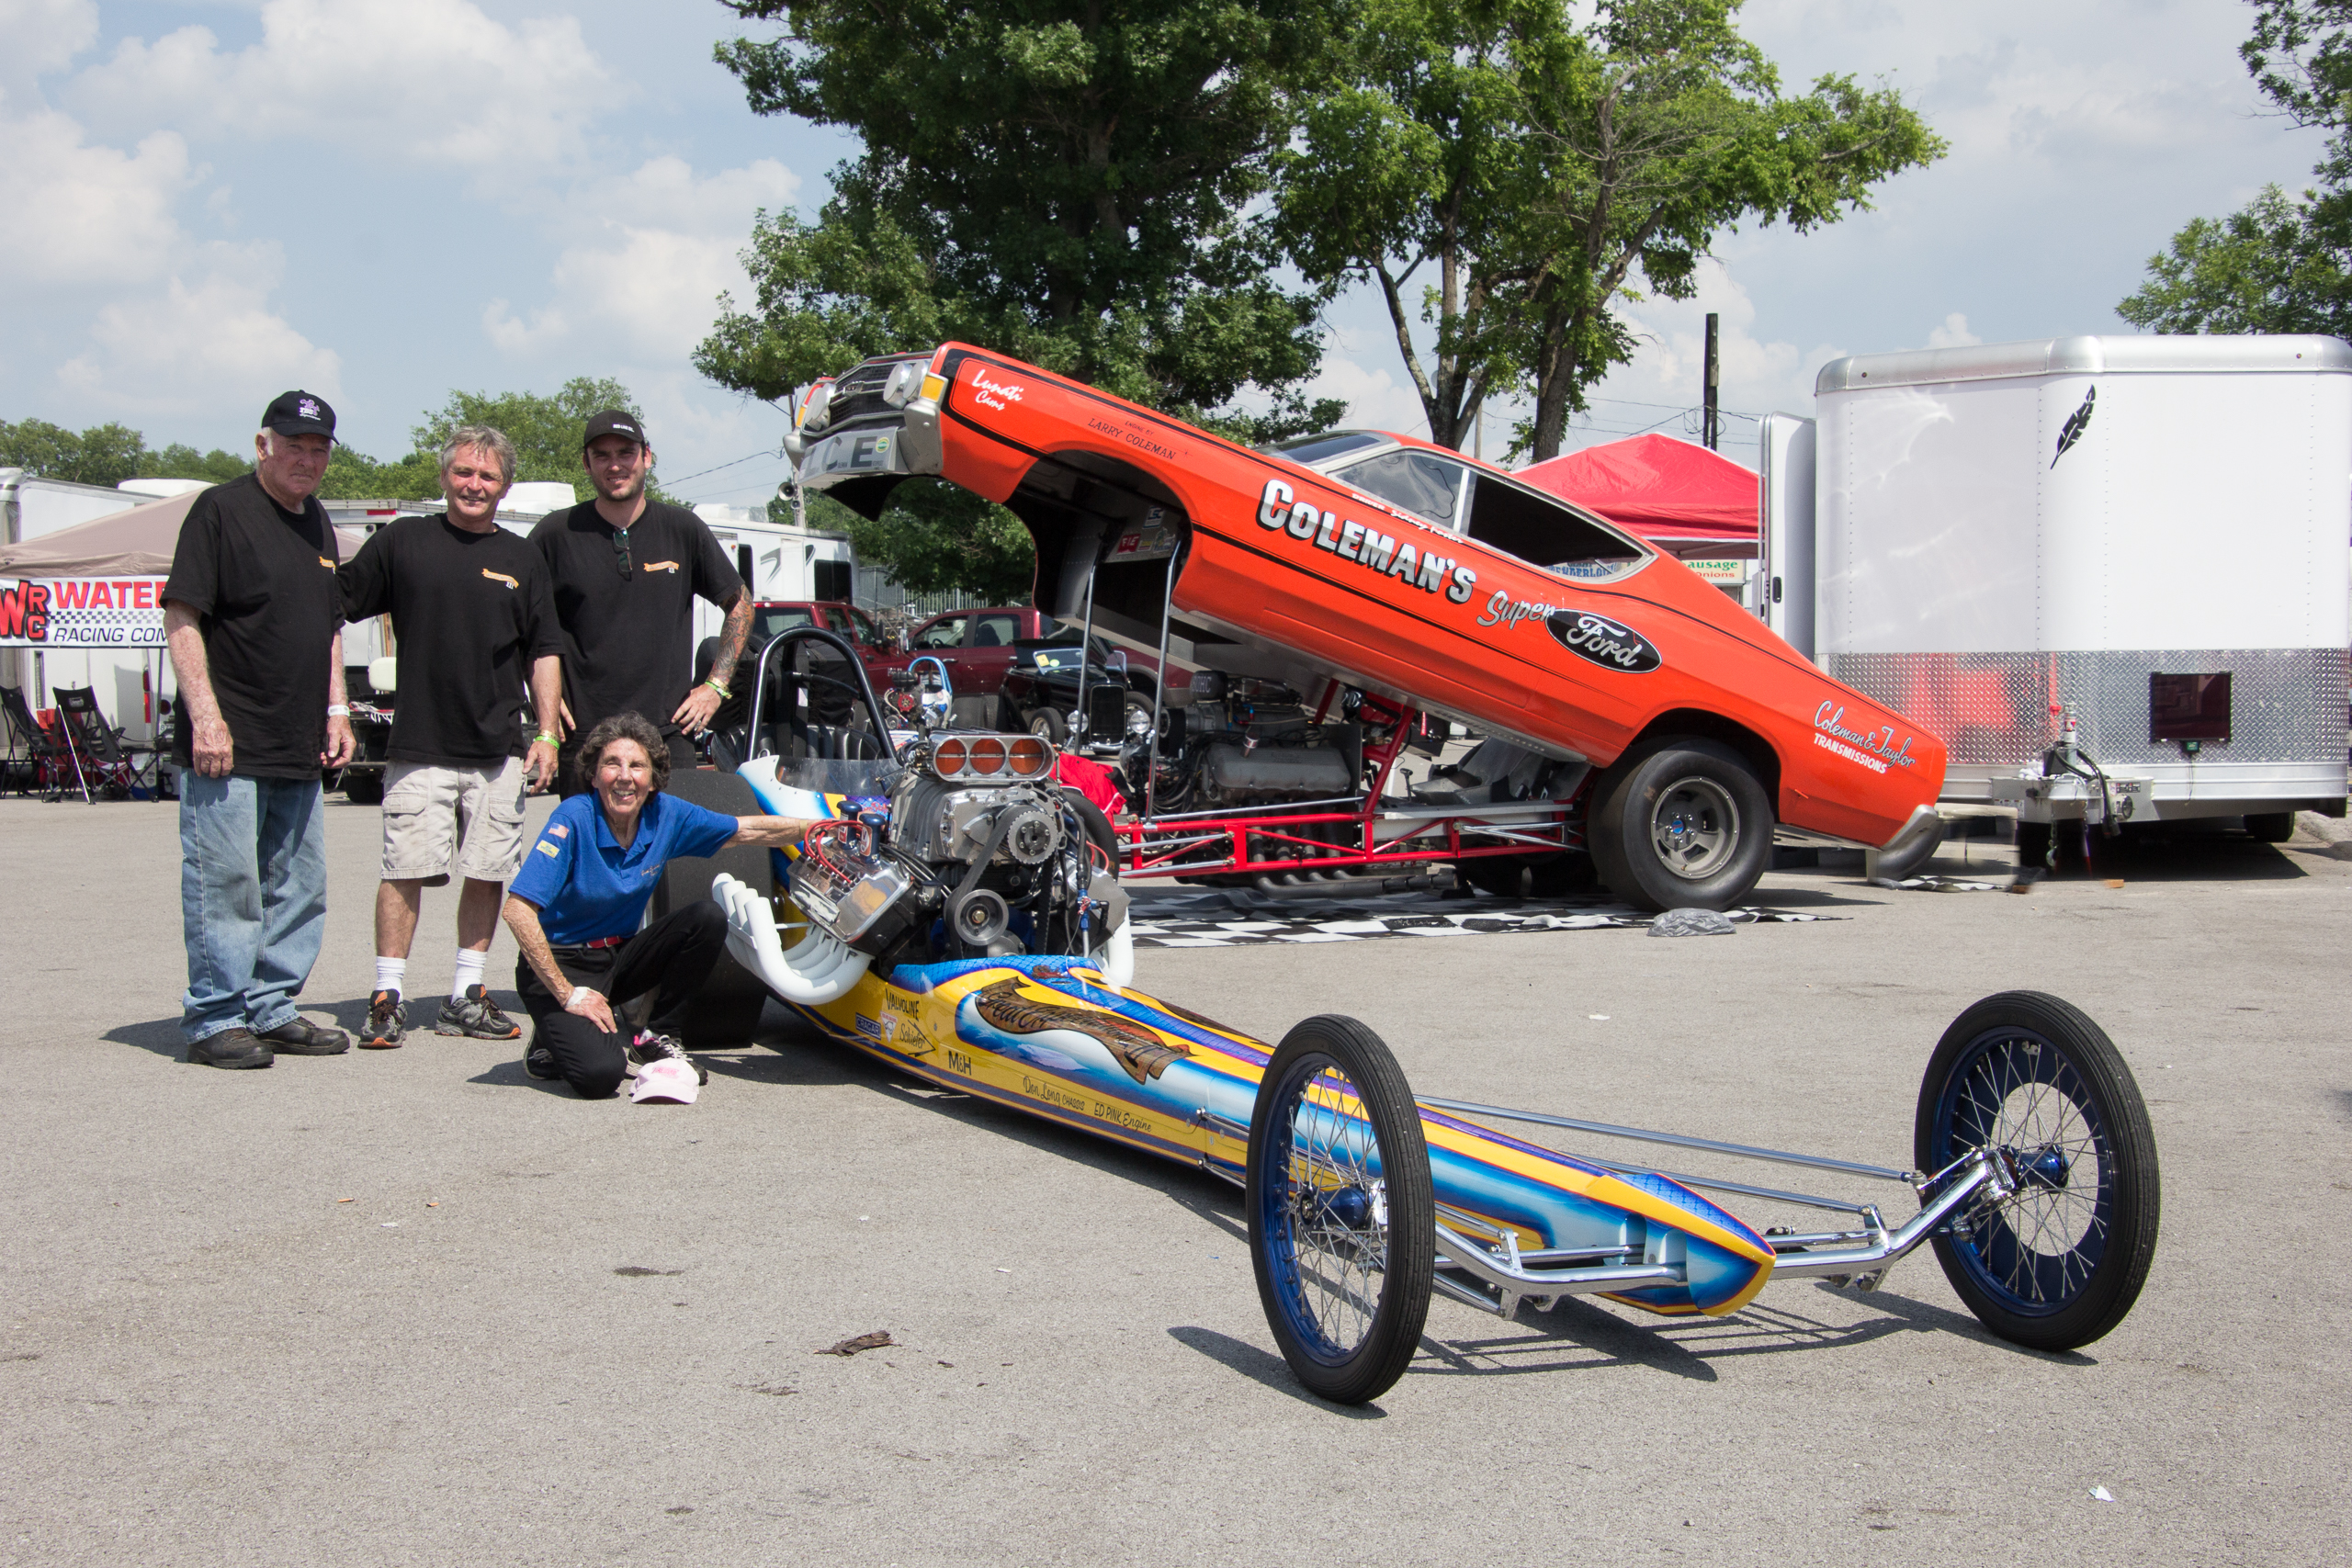 John, Robert and Tyler Hilton, Alison Lee. Three generations of drag racers and the  the restored Great Expectations II AA/Fuel Cacklefest dragster.